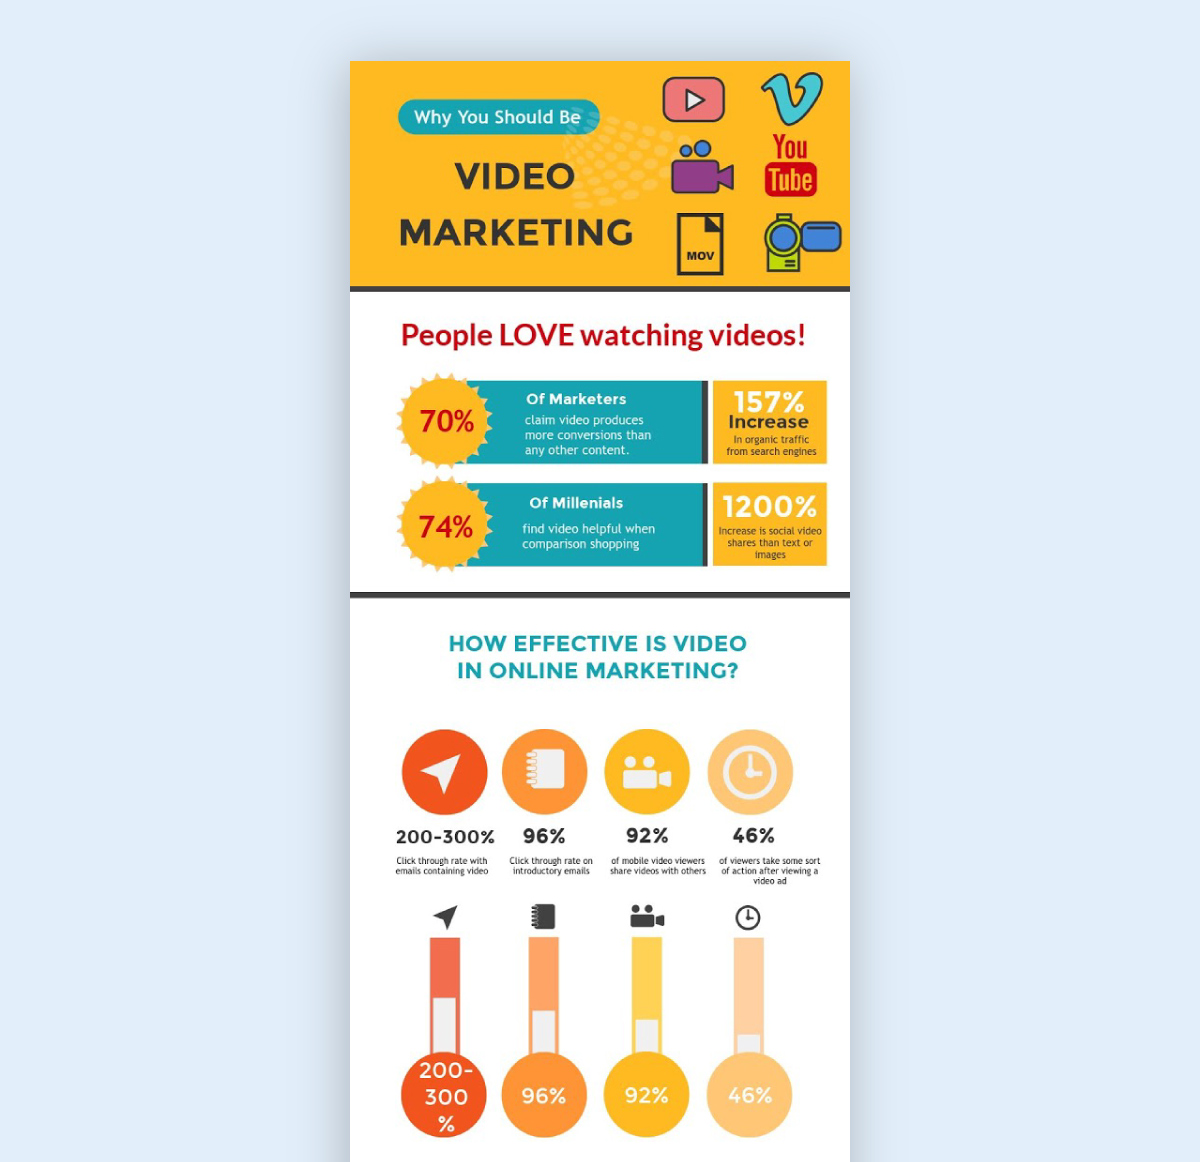 infographic best practice - stick to one main point infographic example template visme 2